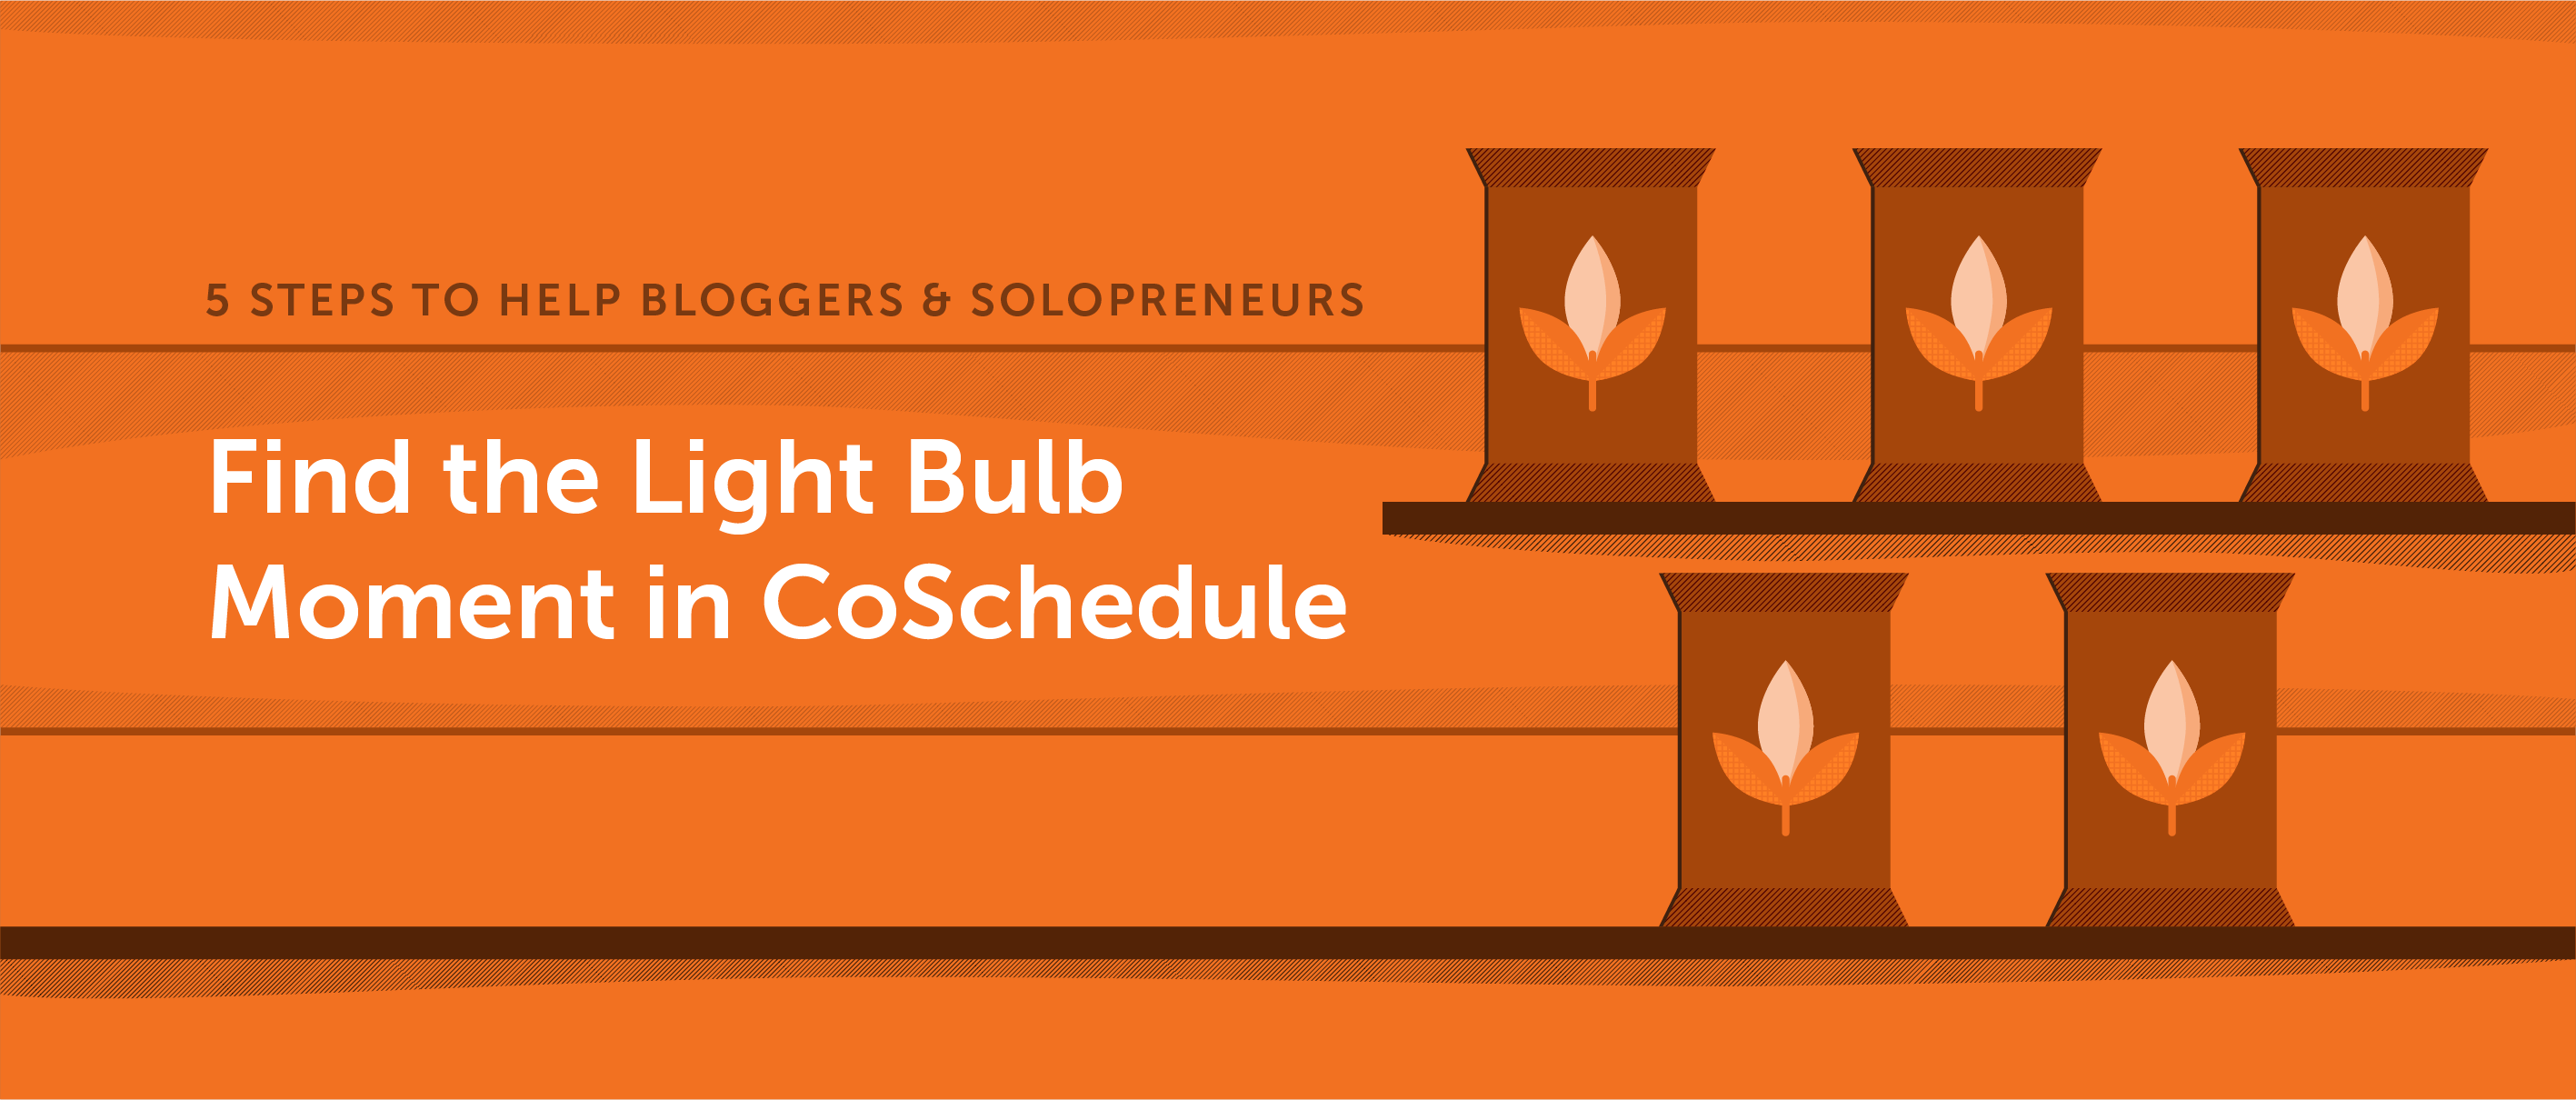 5 Steps to Help Bloggers and Solopreneurs Find the Light Bulb Moment with CoSchedule